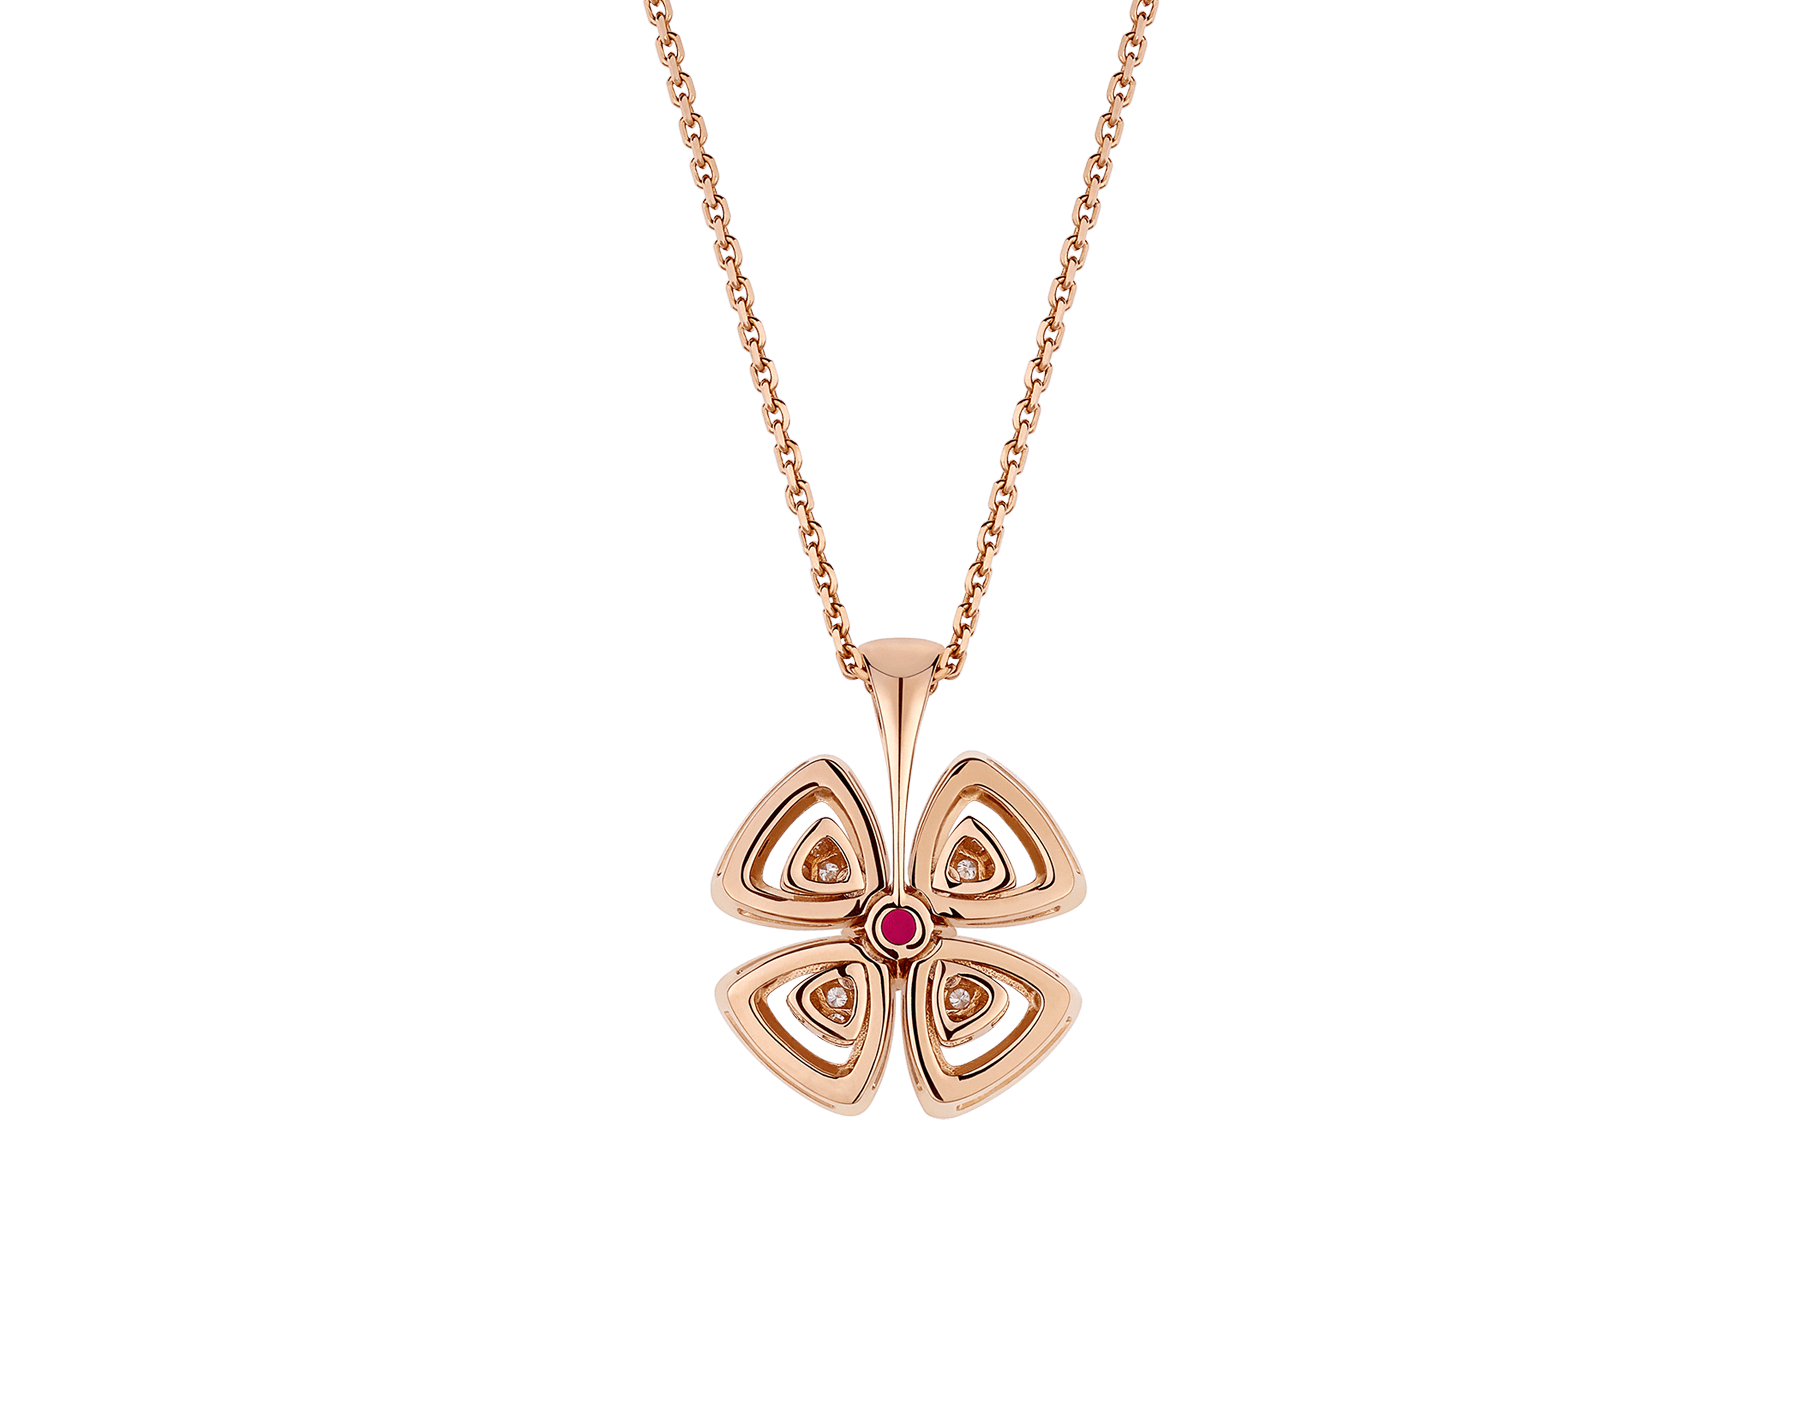 Fiorever 18 kt rose gold pendant necklace set with a central brilliant-cut ruby (0.35 ct) and pavé diamonds (0.31 ct) 358428 image 4